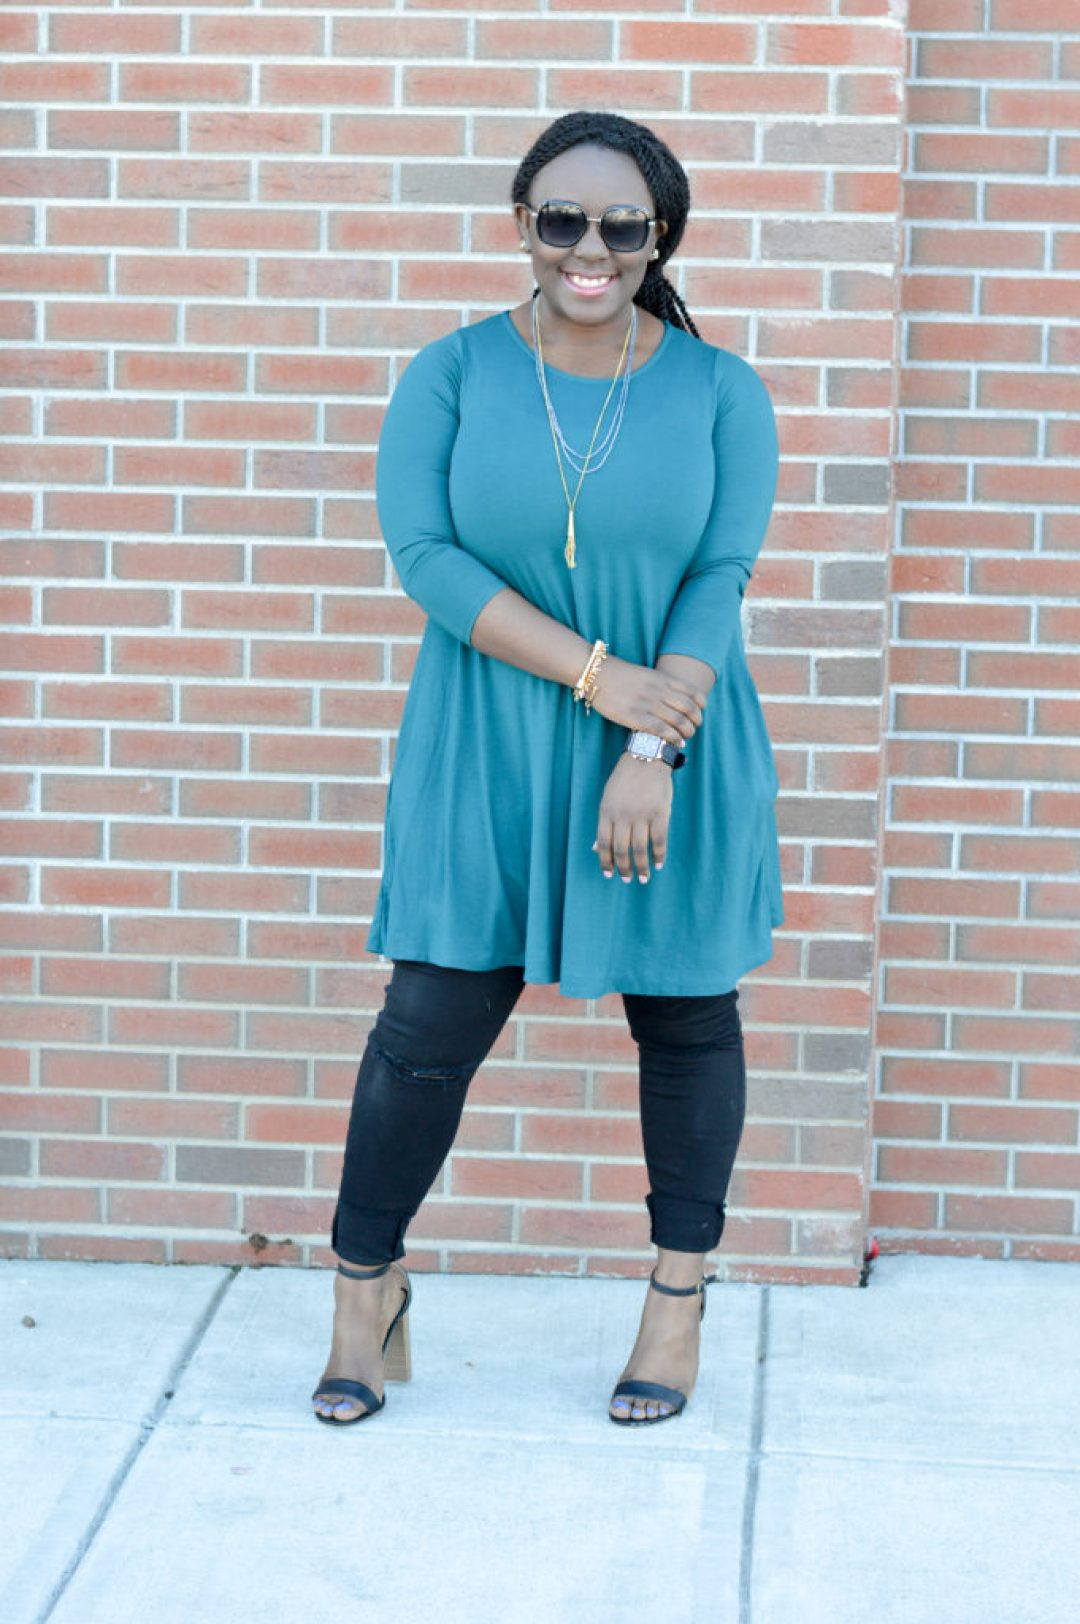 Teal tunic + ripped jeans + black heels